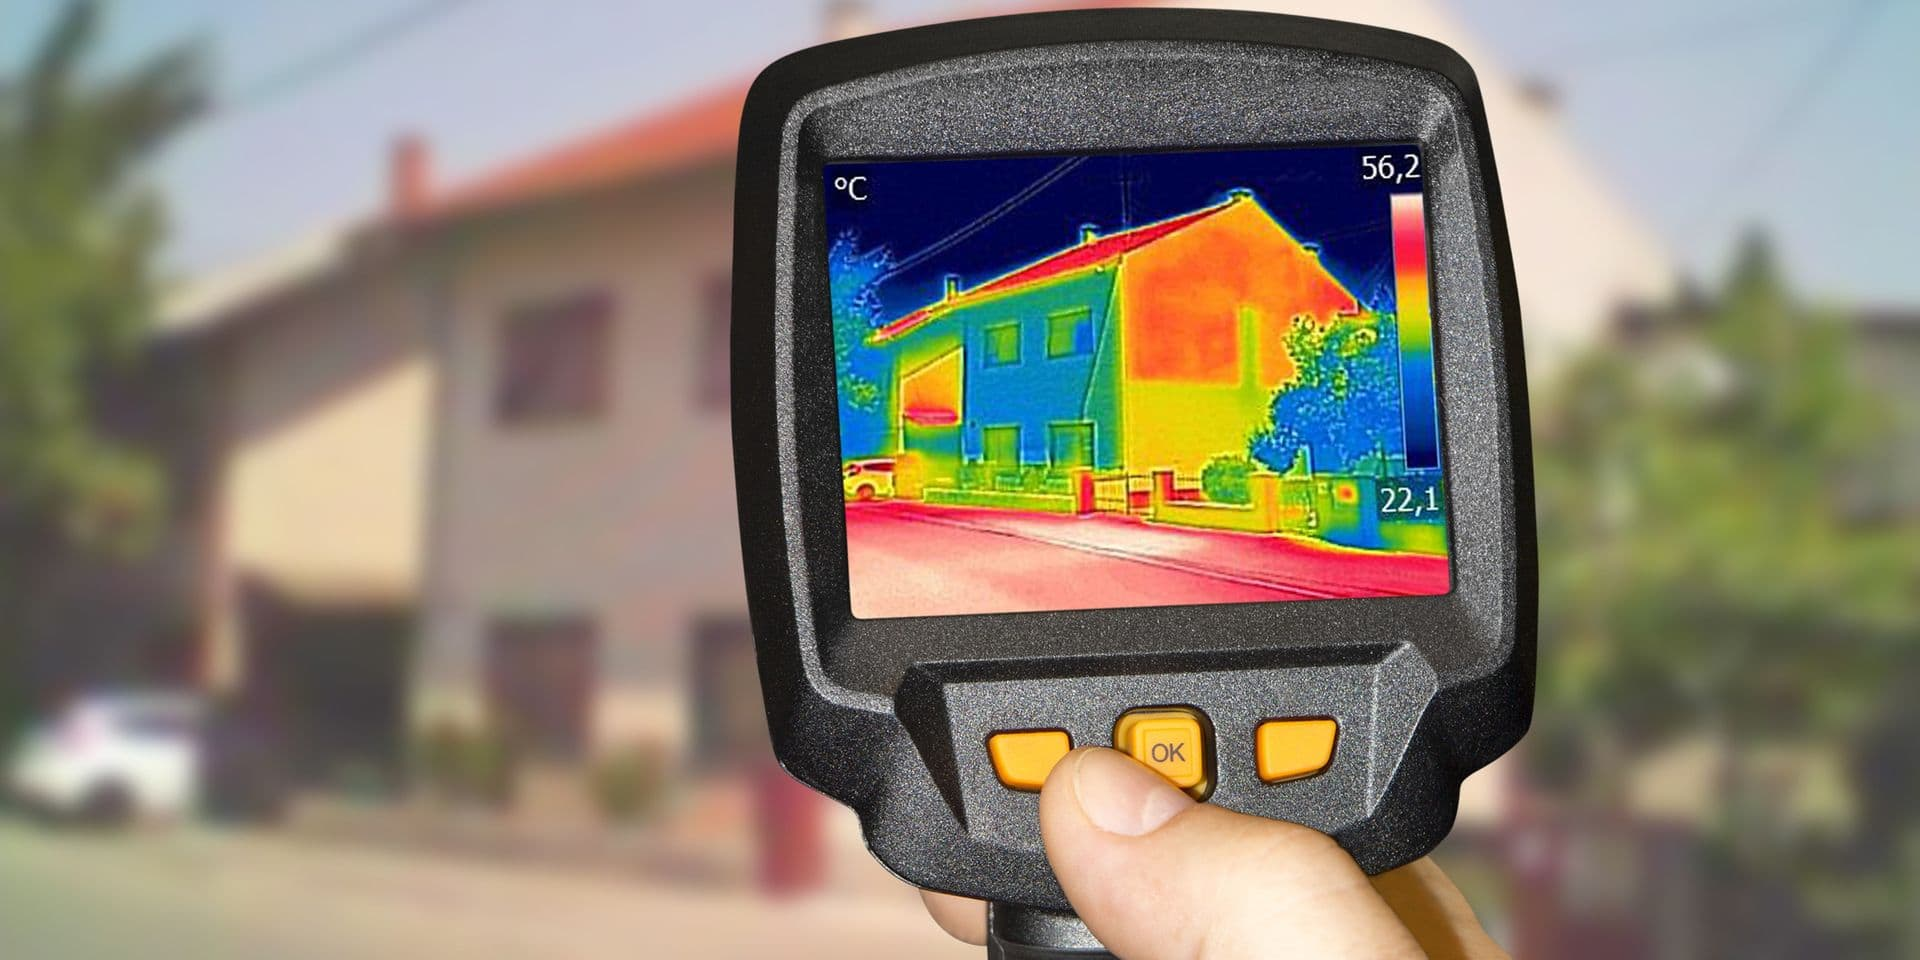 Recording,Heat,Loss,At,The,House,With,Infrared,Thermal,Camera